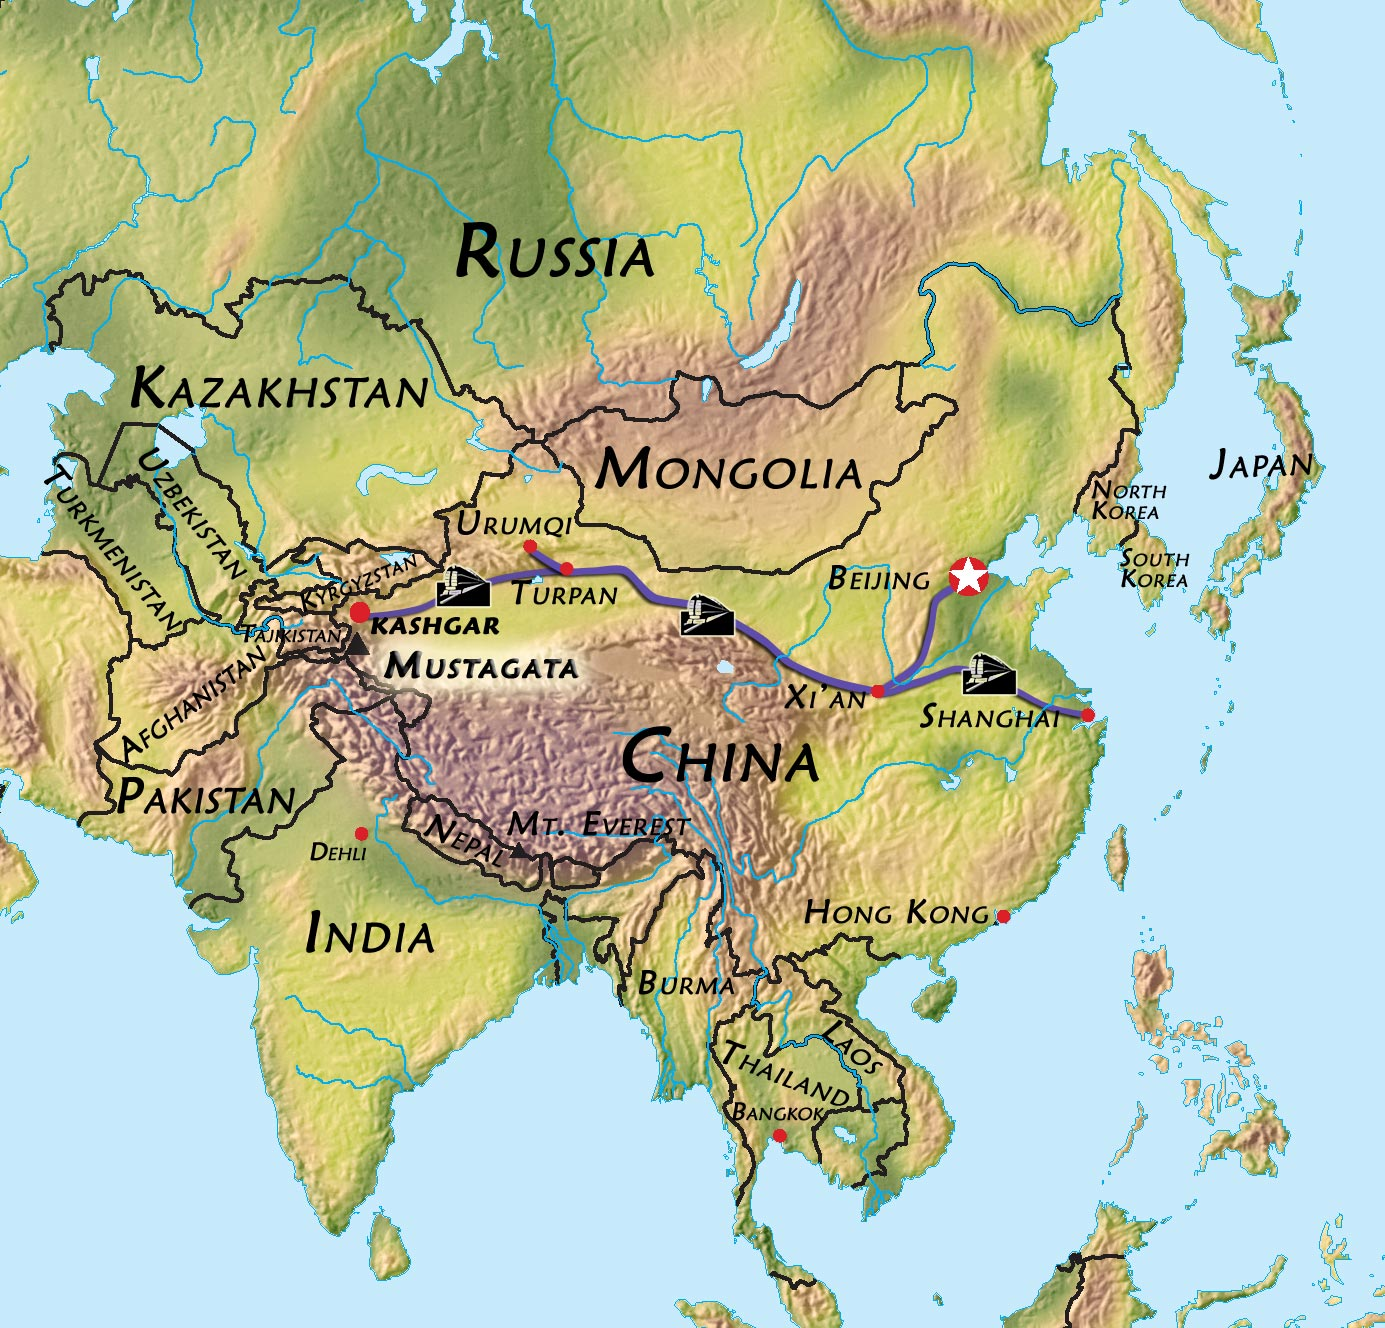 Silk route center of the world olyeats travel2 gumiabroncs Choice Image